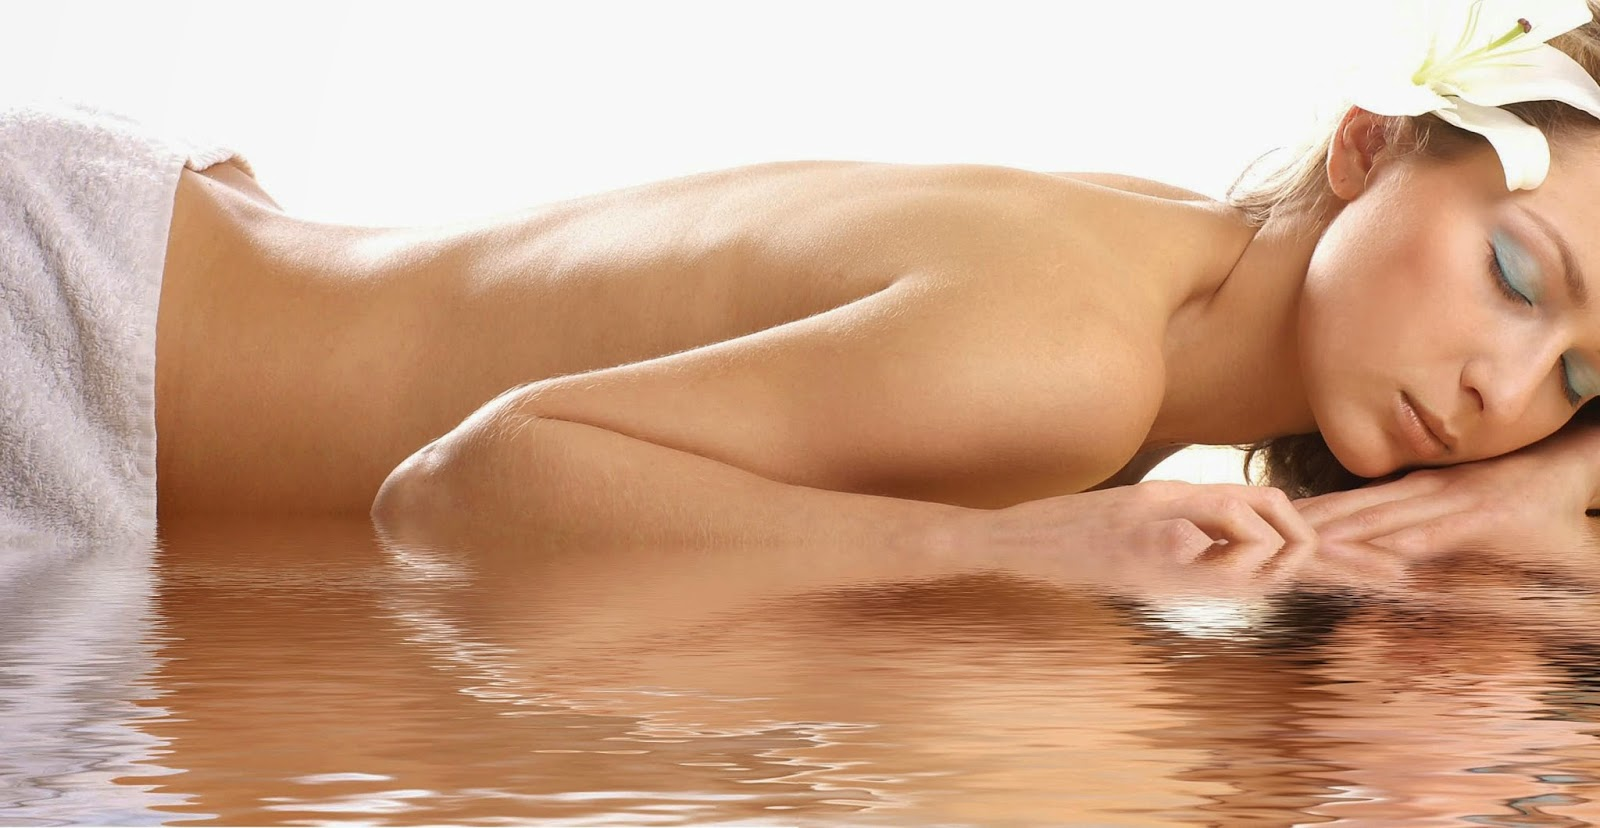 http://www.naturalbodytips.com/2014/09/natural-tip-for-beauty-bath.html